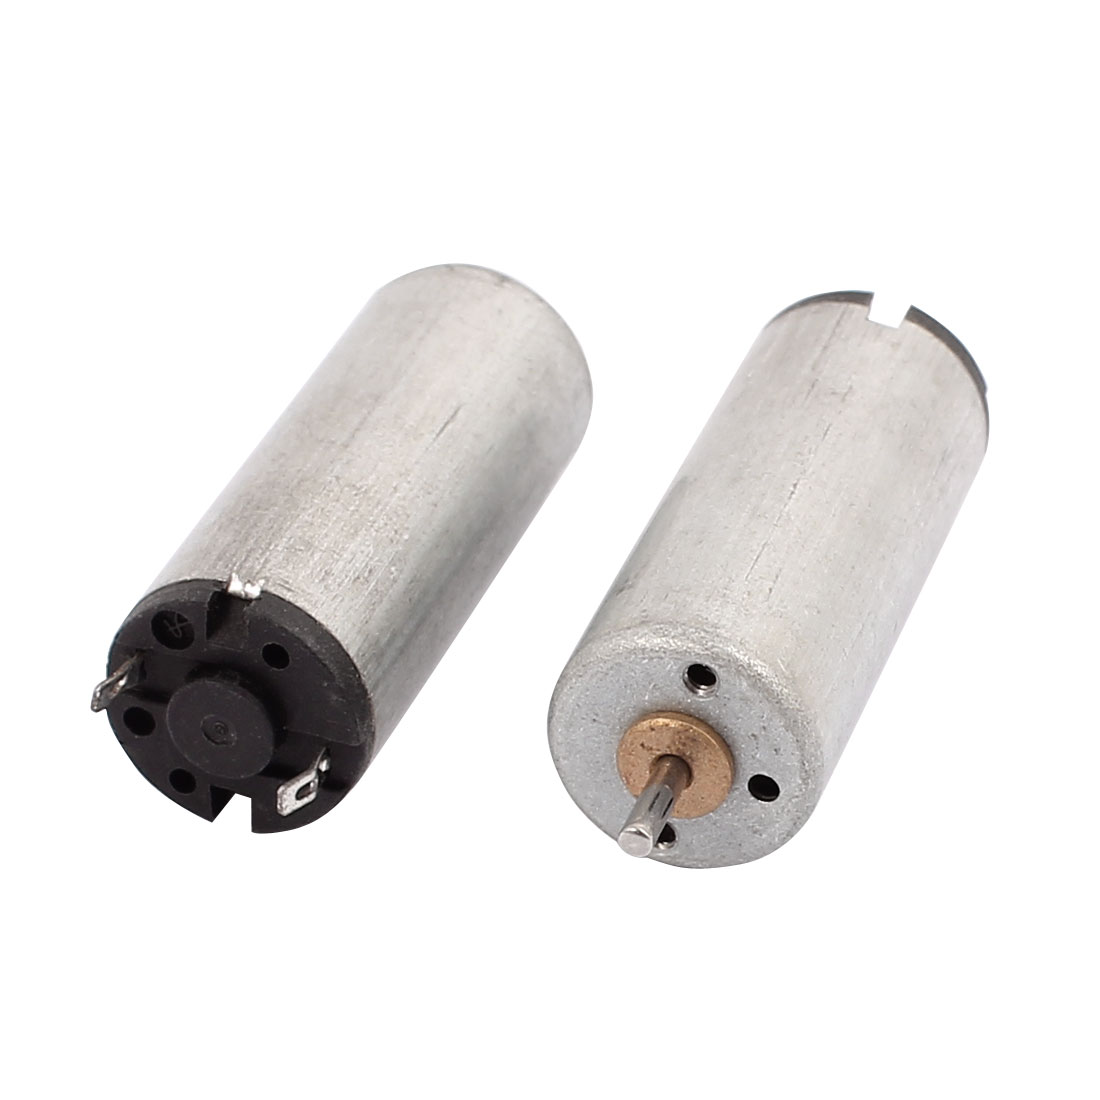 2Pcs DC 3V 23800RPM Large Torque Cylindrical Micro Vibration Motor for Electric Toy